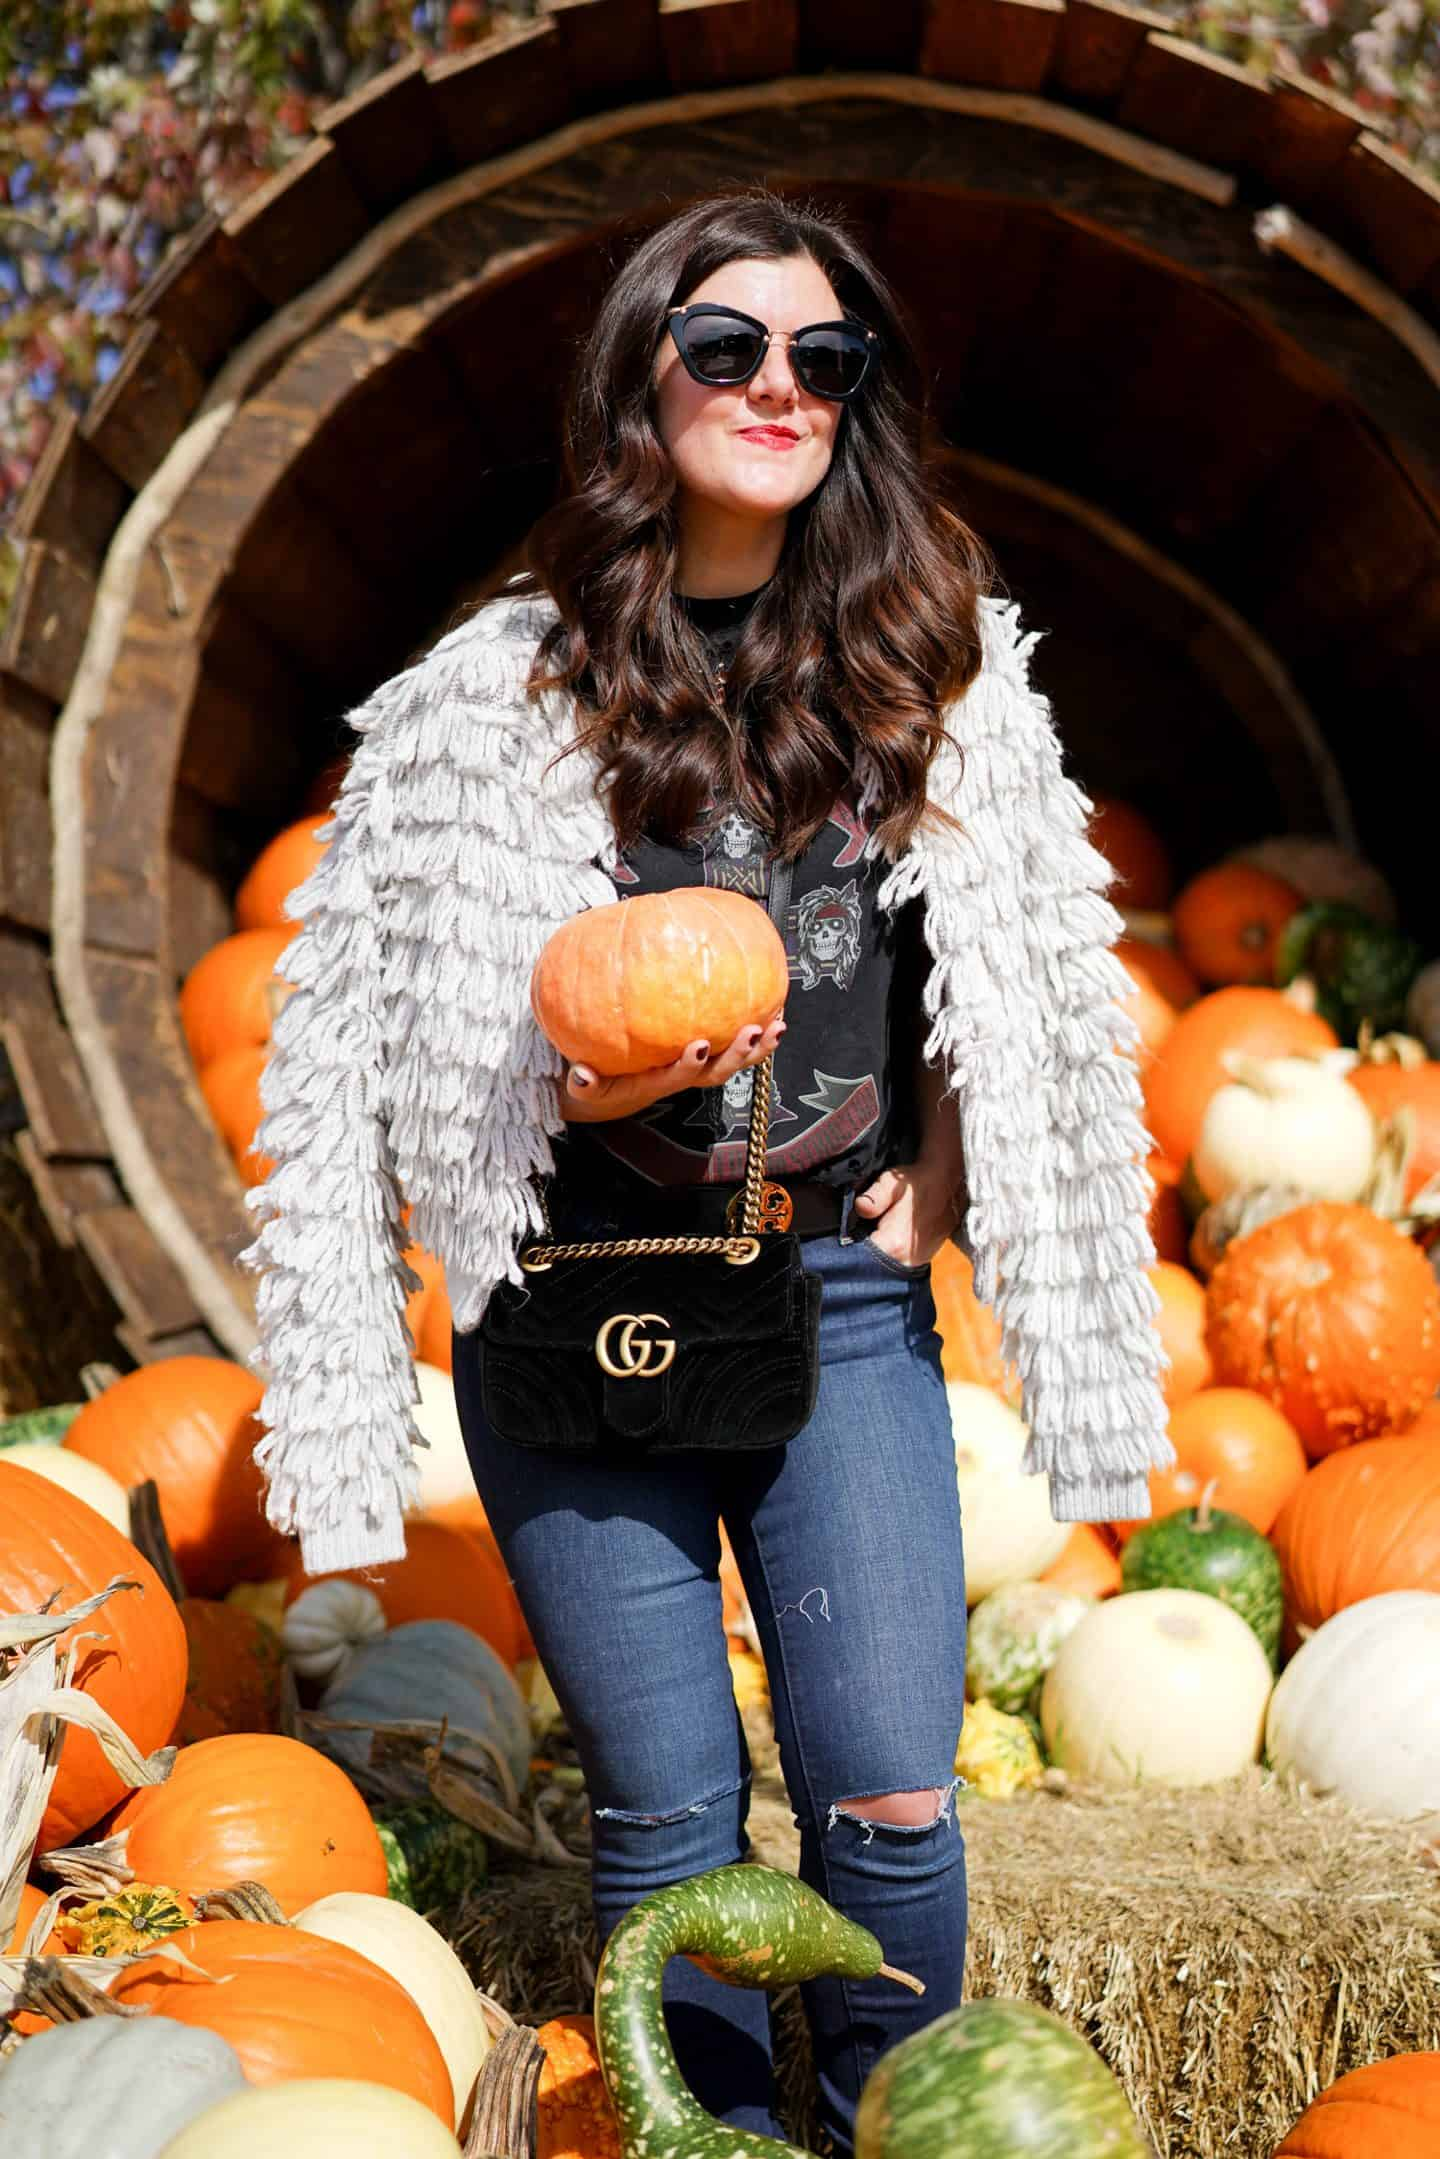 Grand Geneva Resort, Gap Loop Stitch Cardigan, Ann Taylor Skinny Jeans, Gucci Bag, Chicago Blogger, Pumpkin Patch, A Lily Love Affair